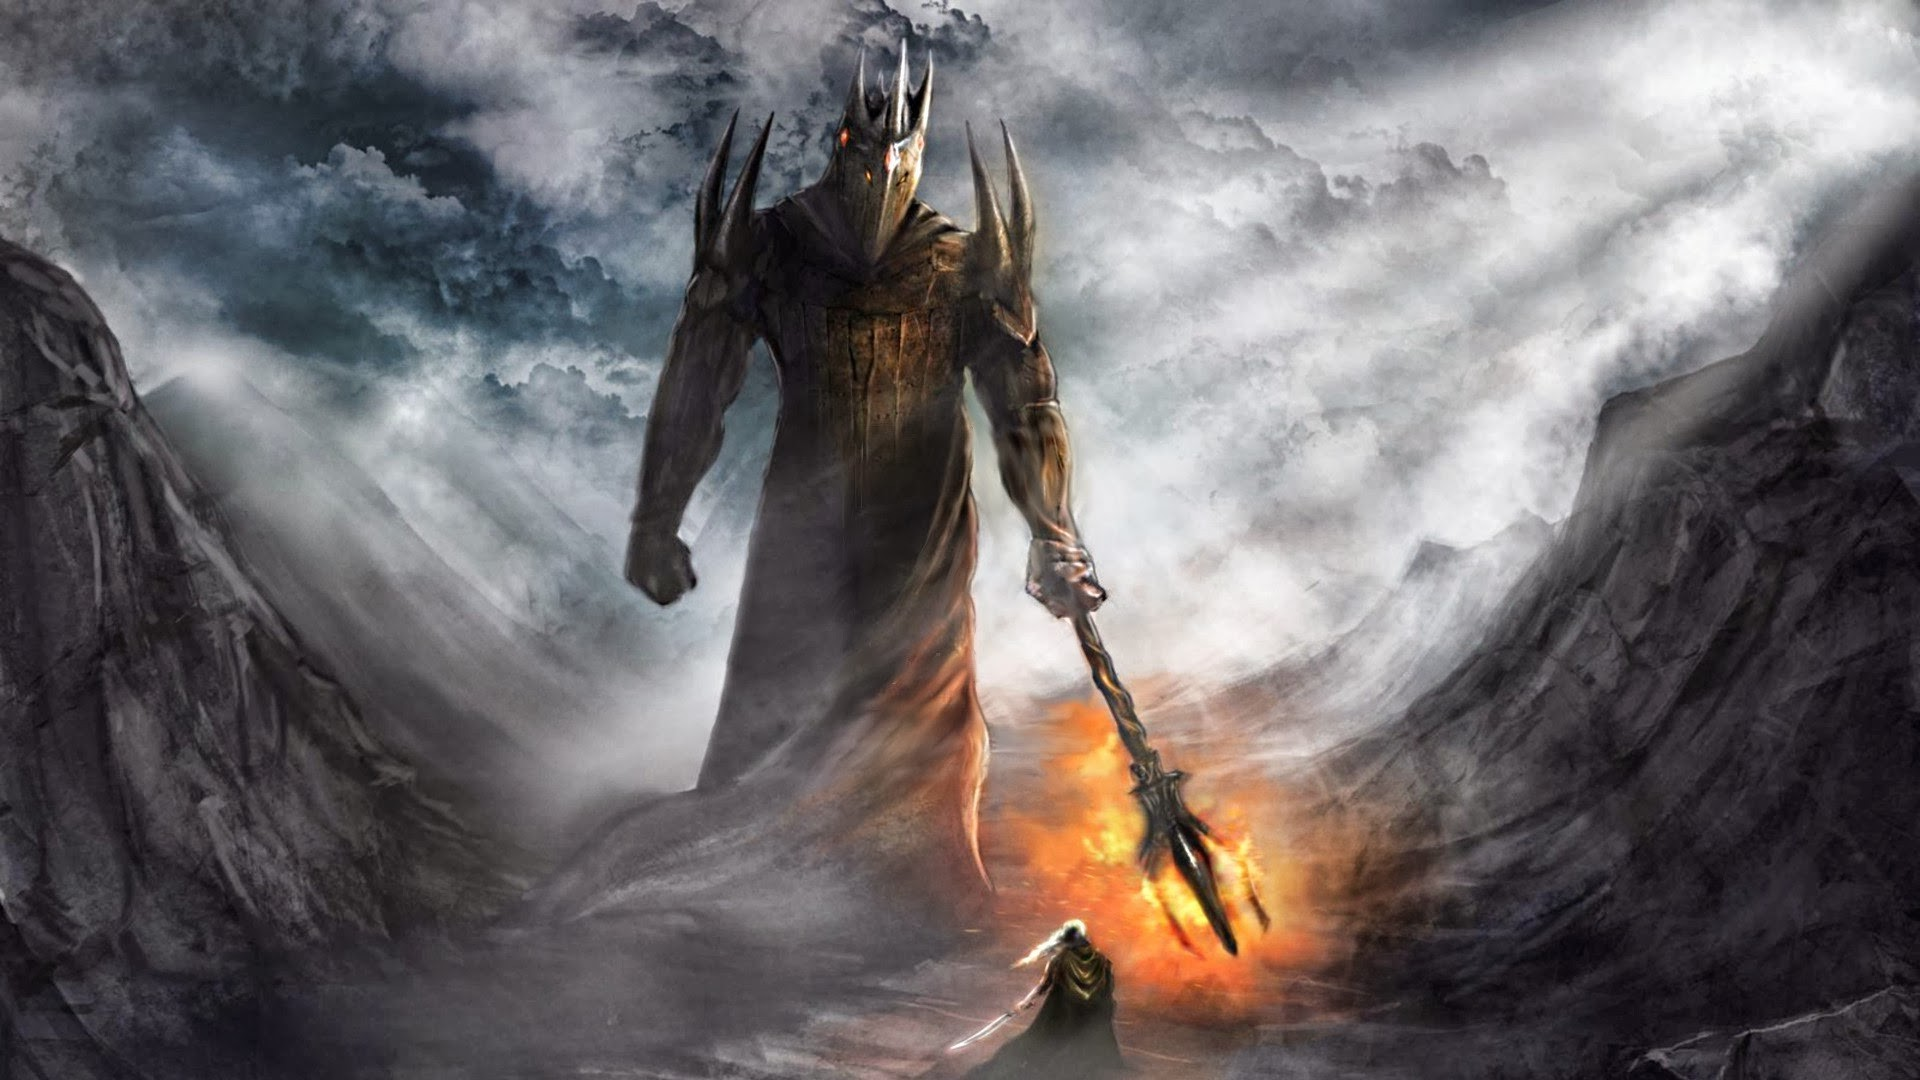 Tolkien wallpaper 78 images 1920x1080 fantasy art the lord of the rings morgoth j r r tolkien wallpapers hd voltagebd Image collections